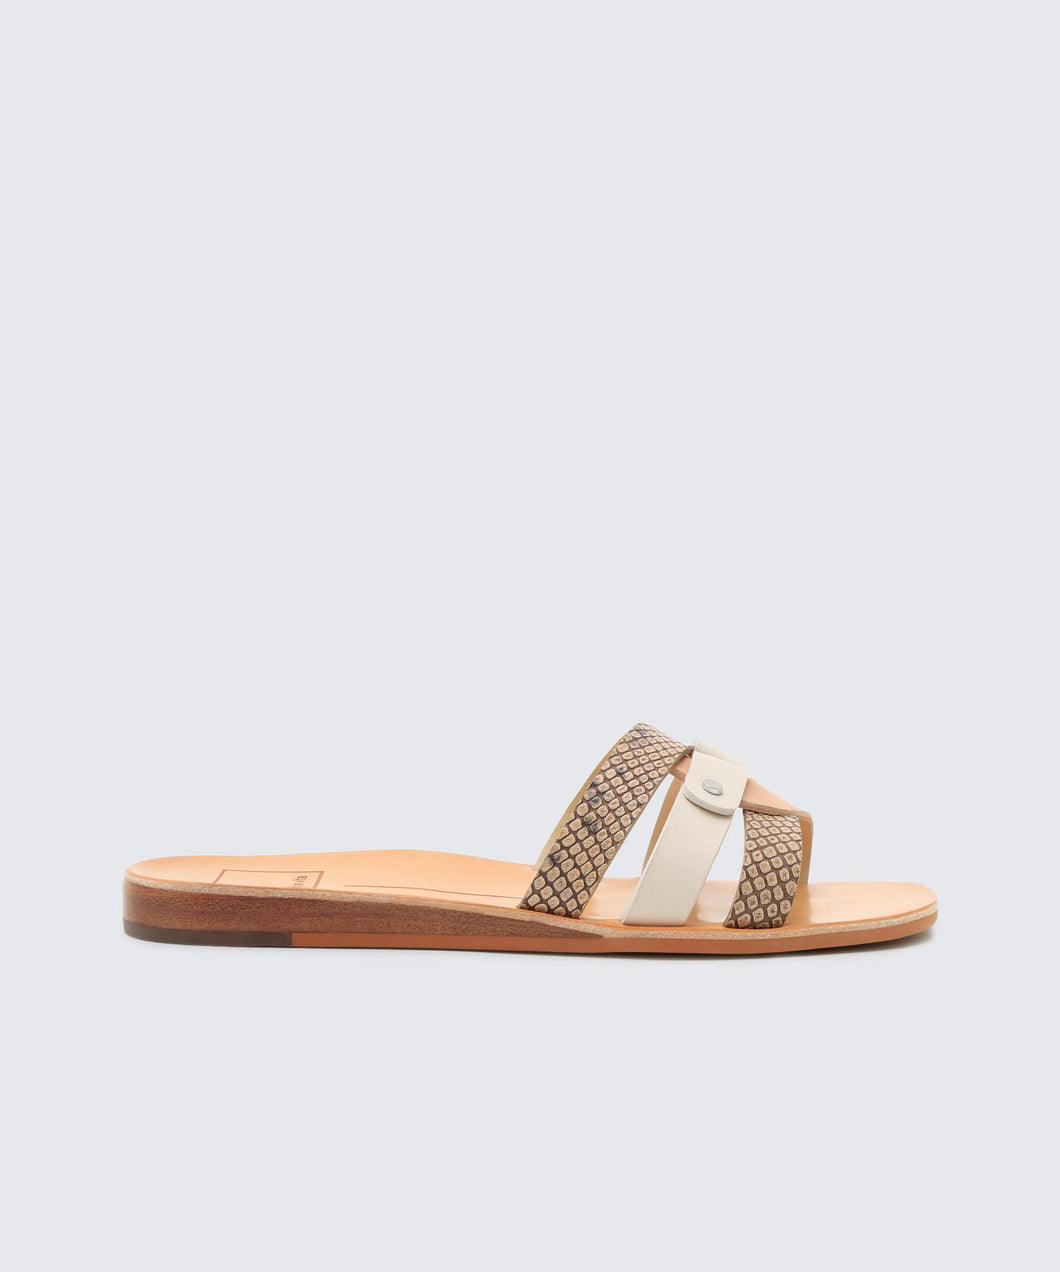 CAIT SANDALS IN WHITE SNAKE -   Dolce Vita